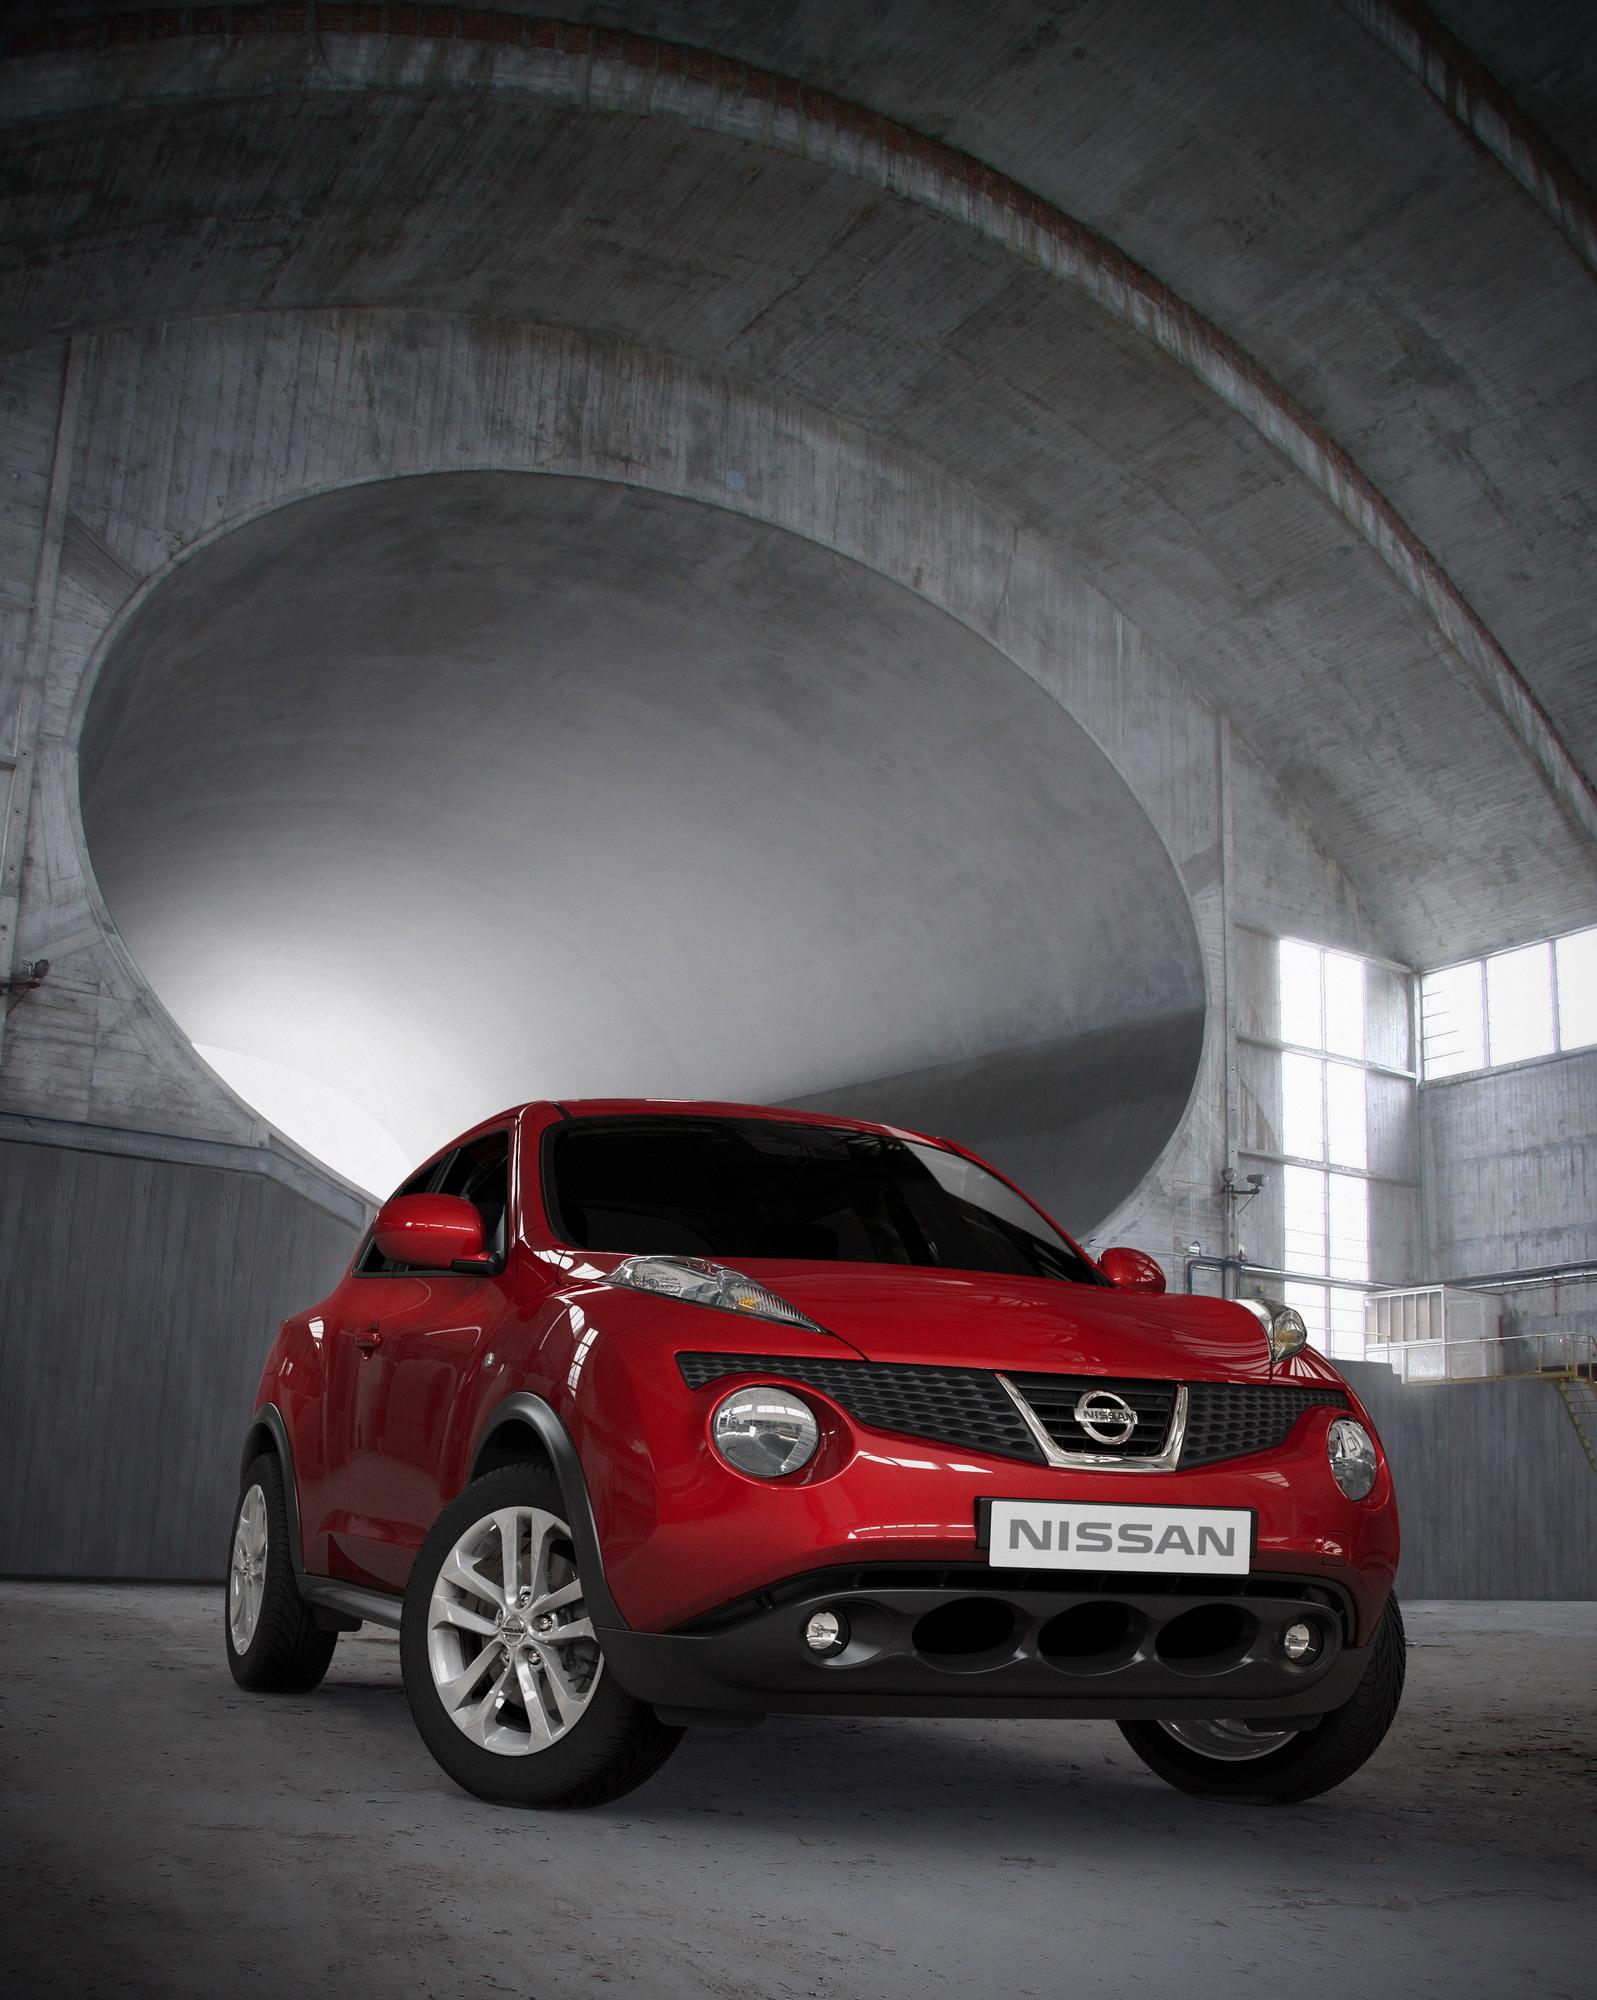 2011 Nissan Juke | Top Speed. »